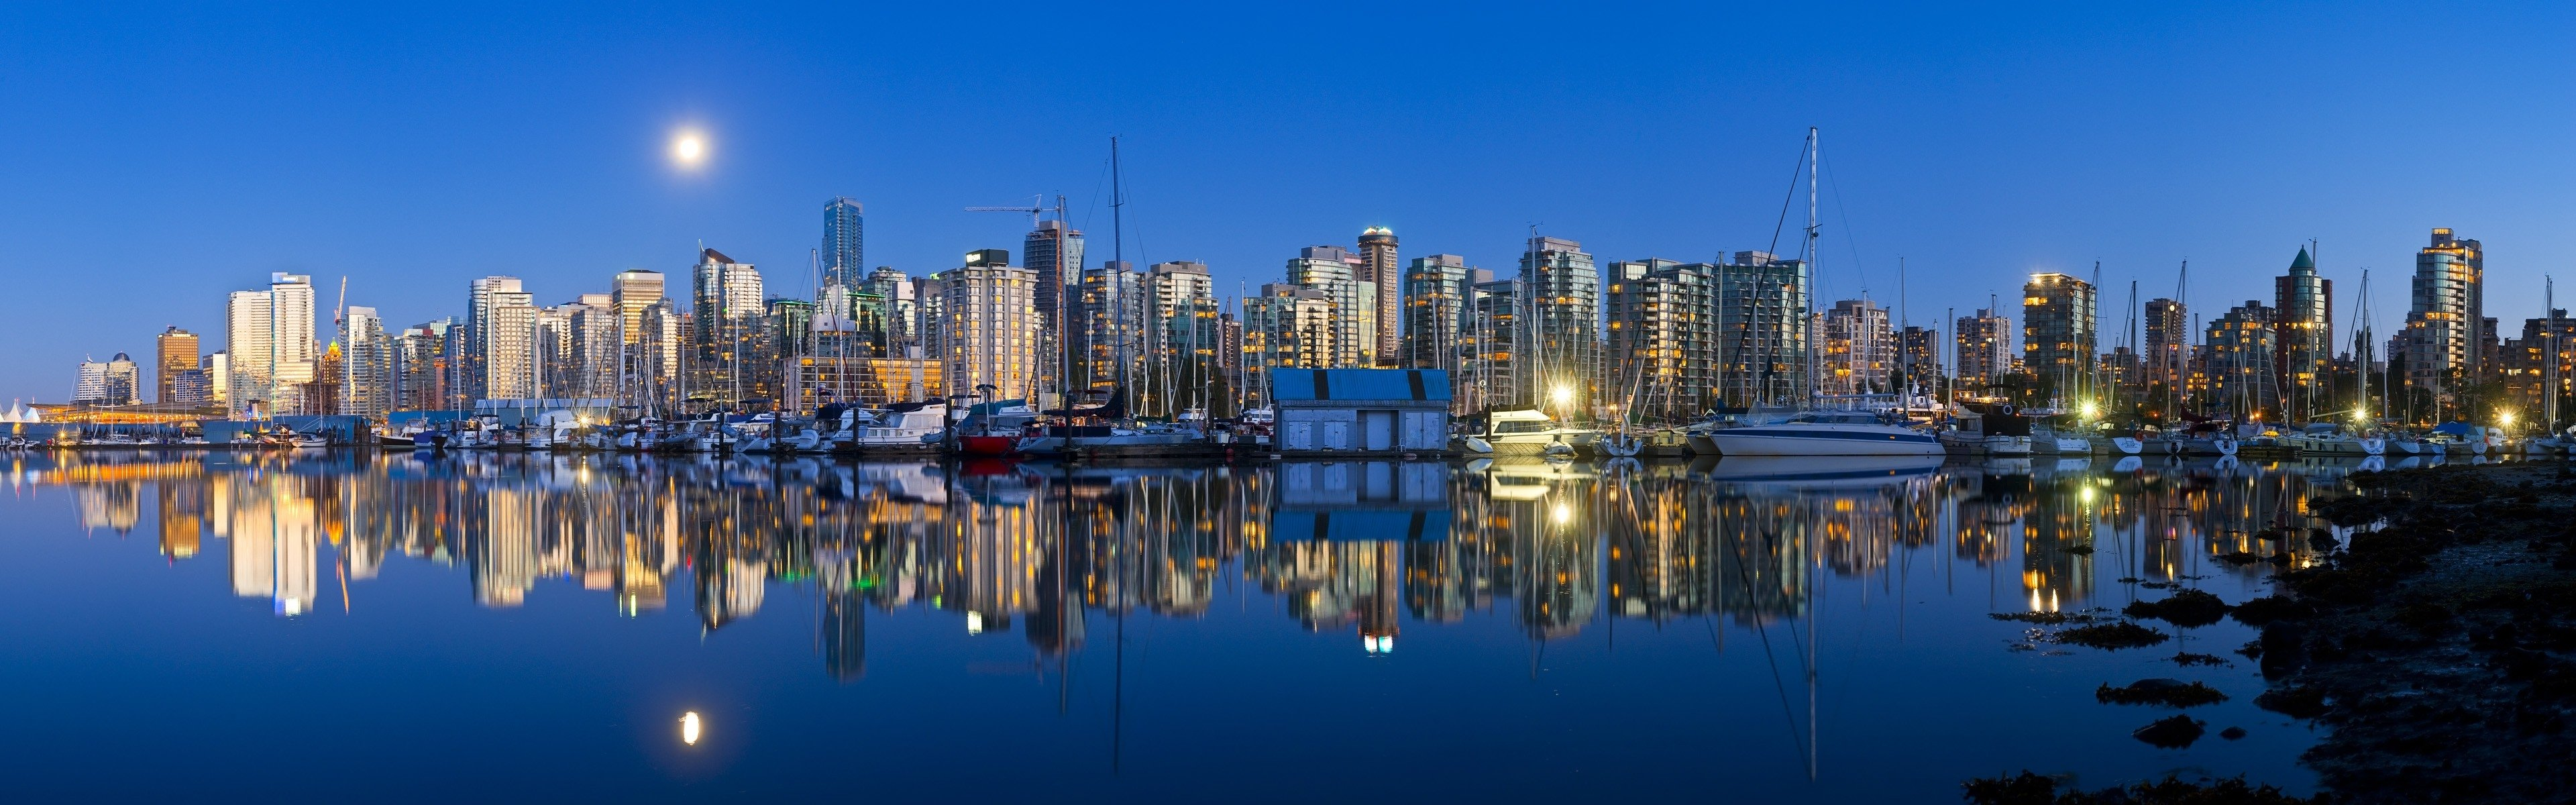 Download dual screen 3840x1200 Vancouver desktop wallpaper ID:486940 for free